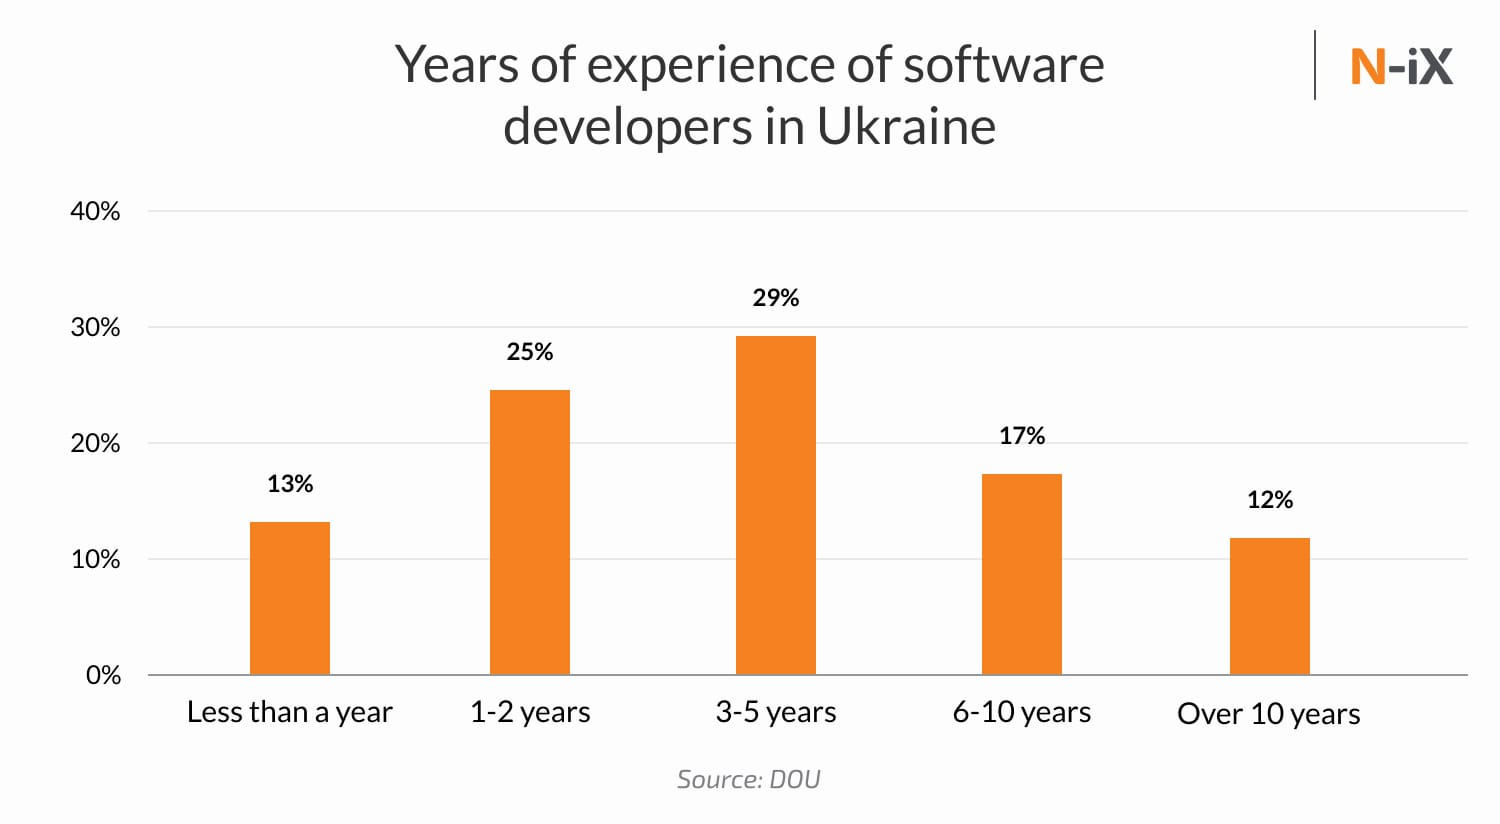 developers for software development outsourcing in Ukraine